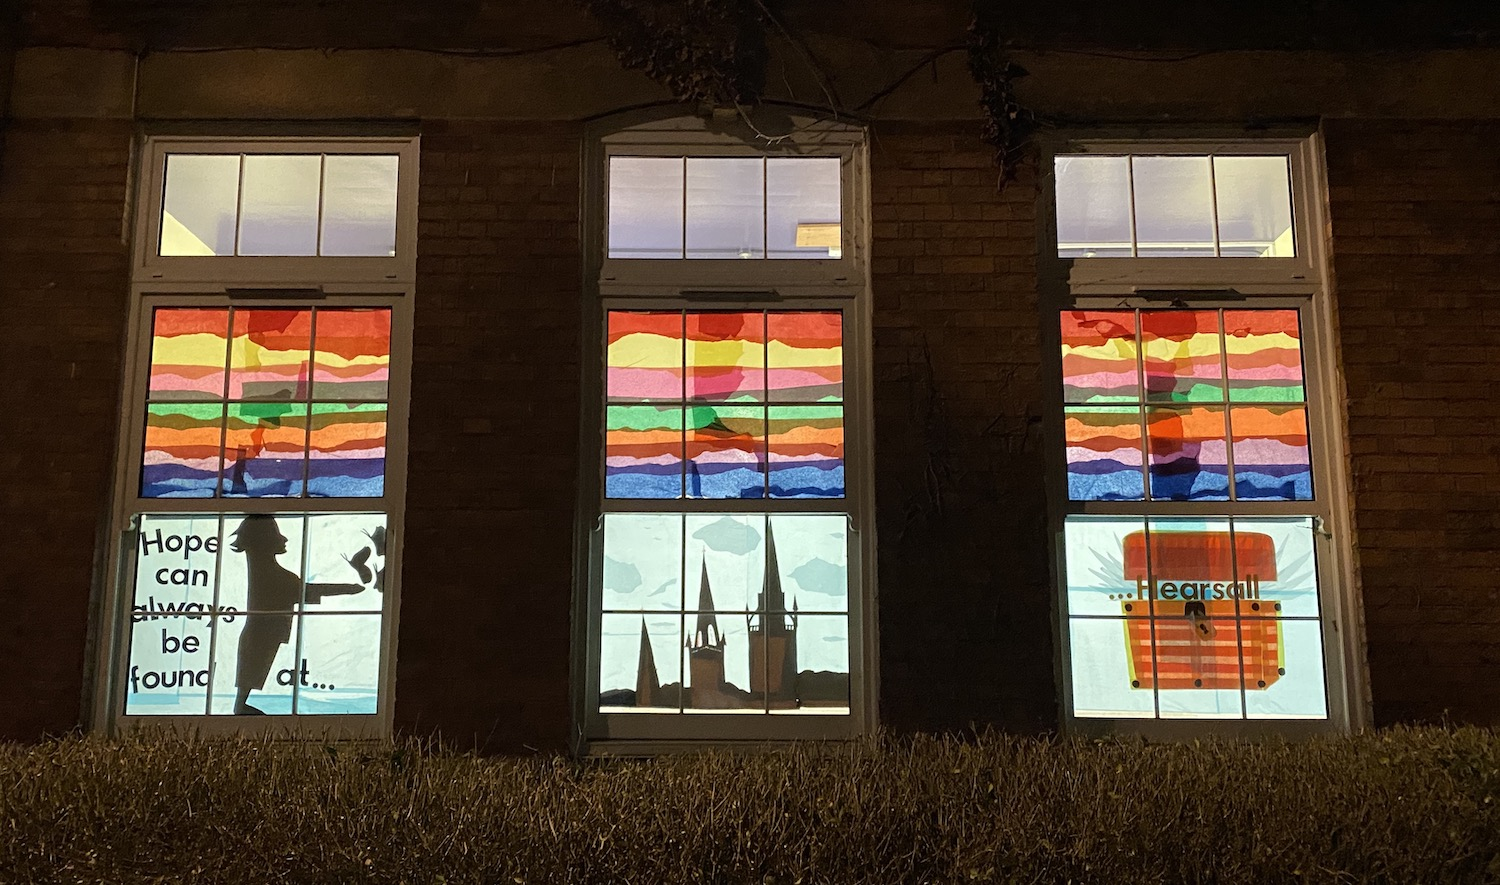 A local primary school offers a message of hope with this rainbow window depicting a child and a book.